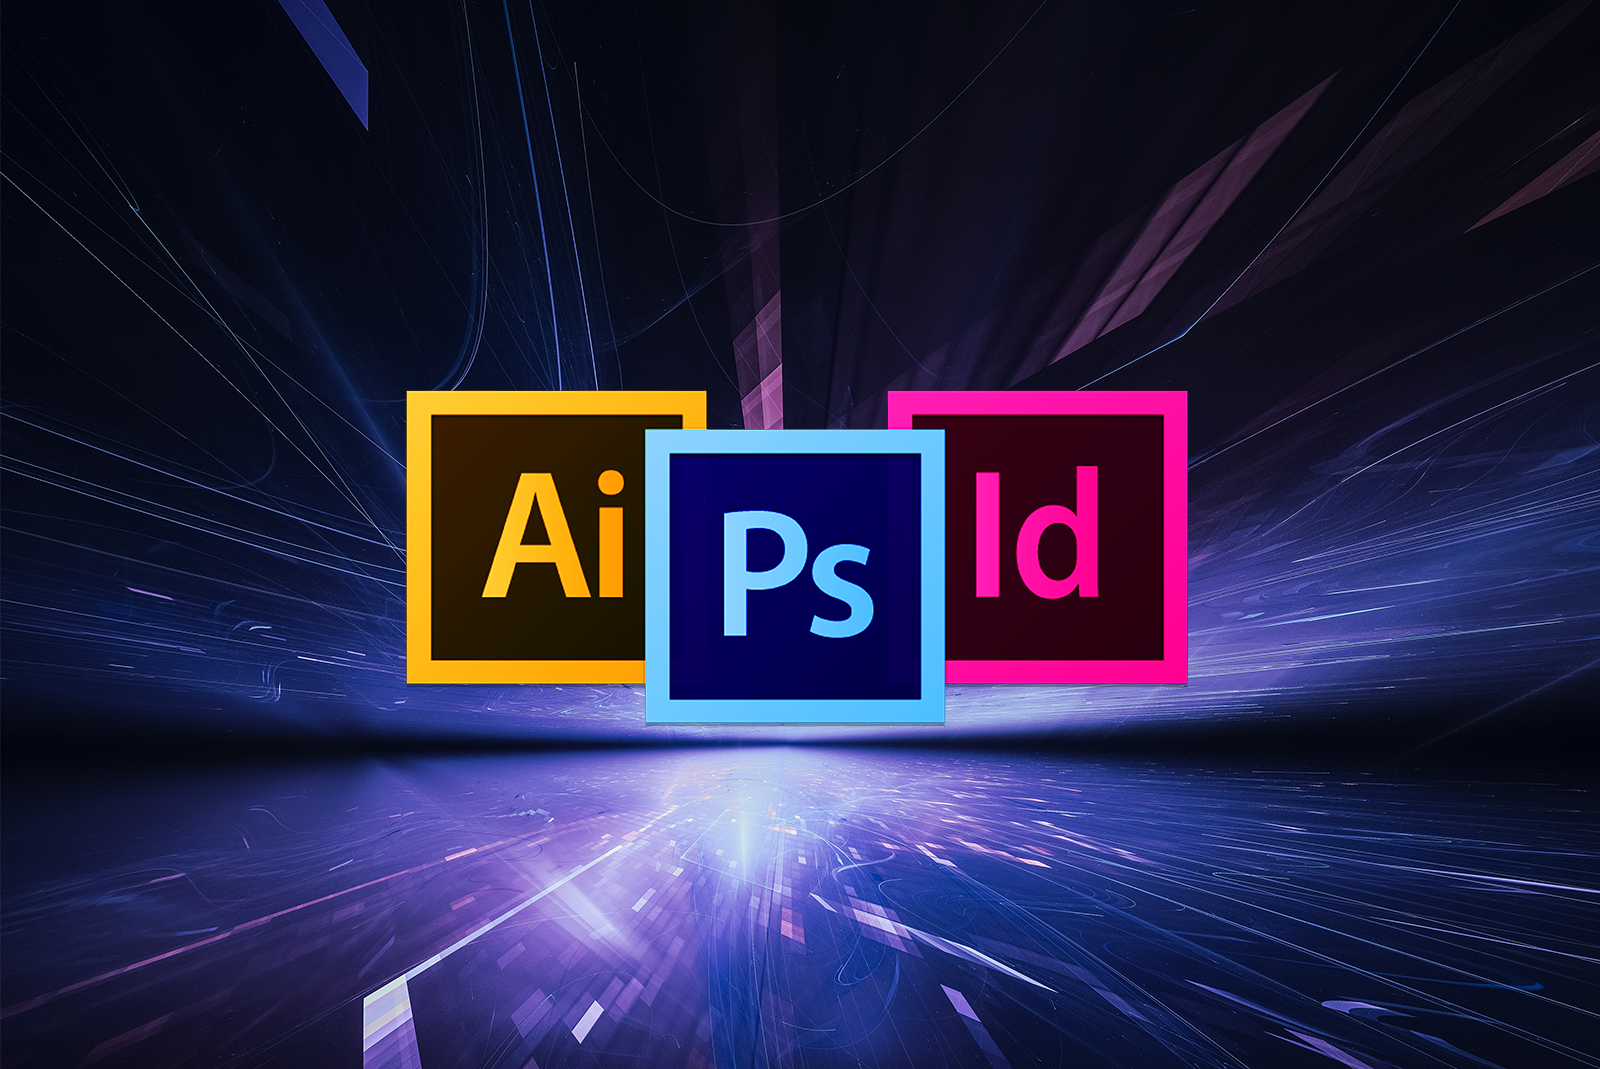 Master Grafica Adobe Photoshop Illustrator InDesign Tivoli Forma Academy 1600x800